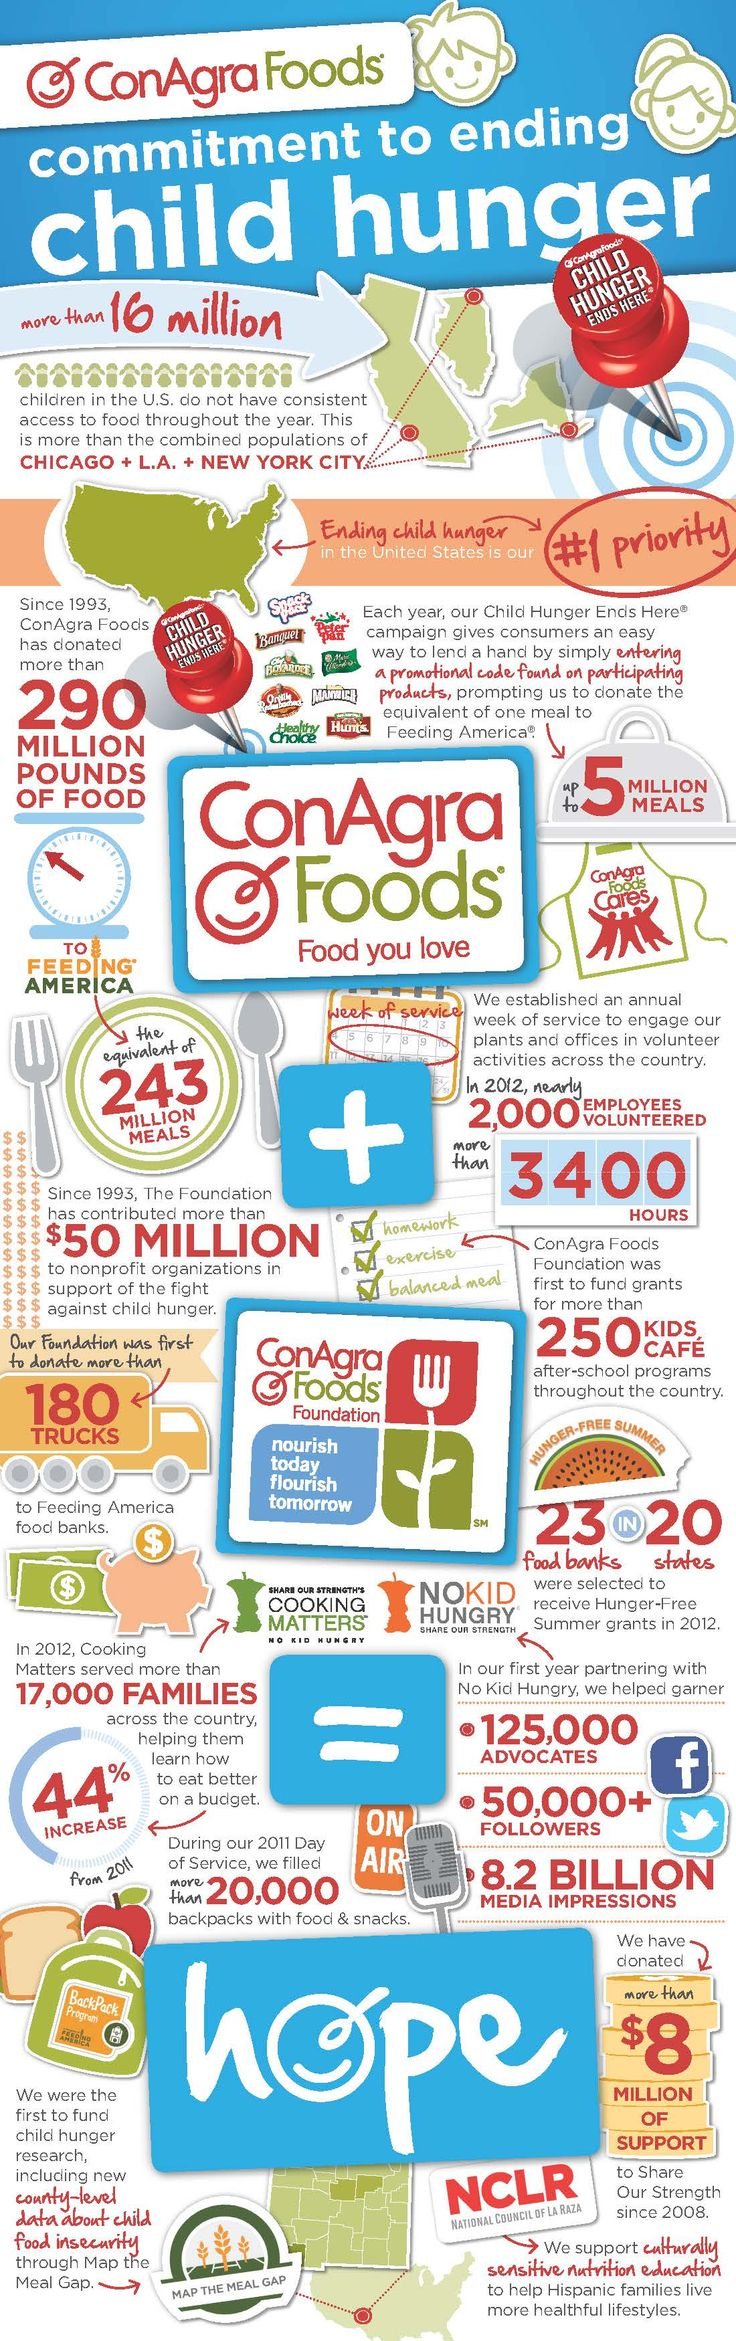 ConAgra Foods + ConAgra Foods Foundation = Hope. u can type in the code at www.childhungerendshere.com. u can find these codes on the back of ConAgra Foods products such as Snack Puddings and Jello.